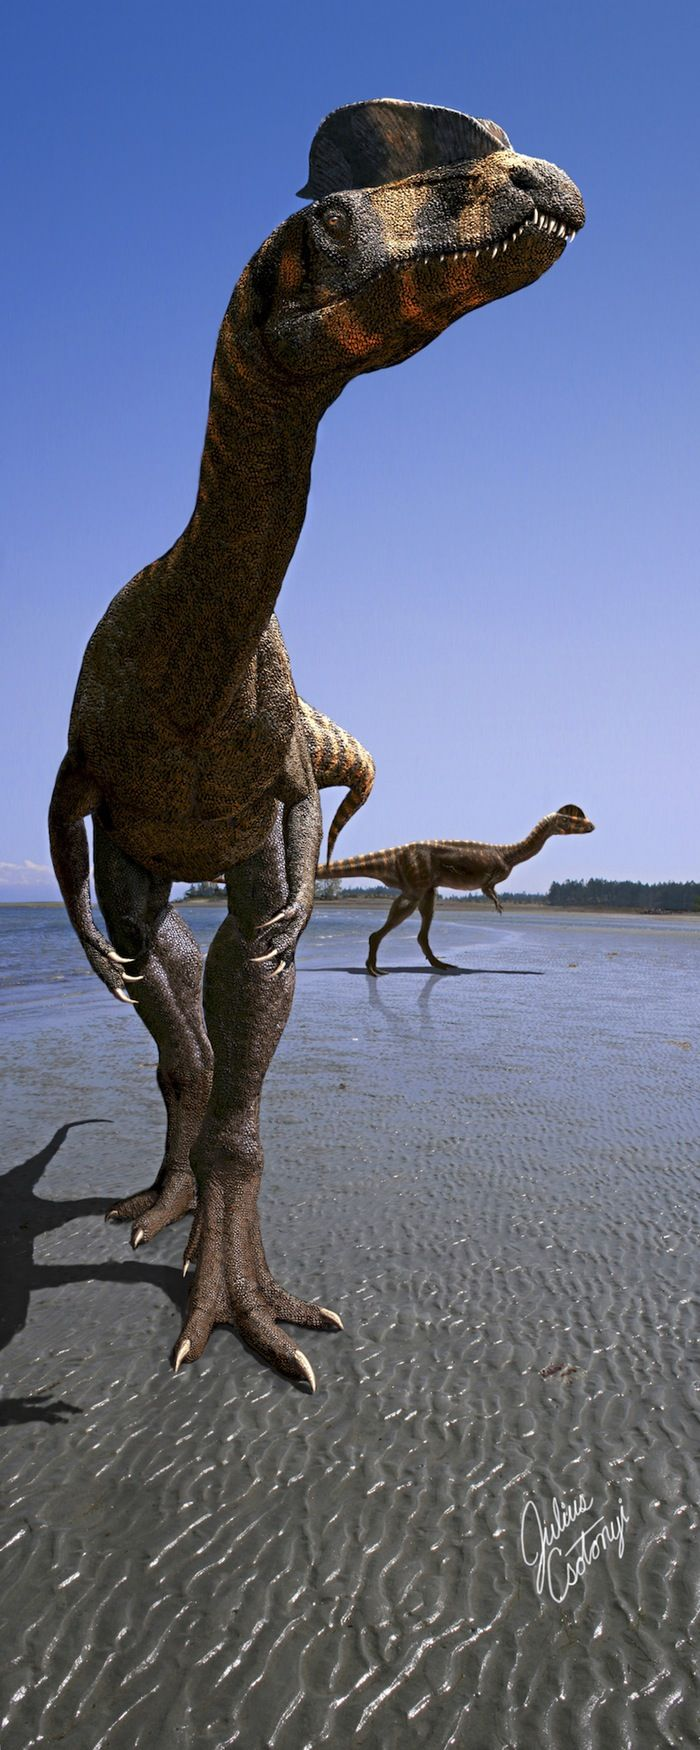 Why giant dinosaurs evolved fancy headwear | Cosmos